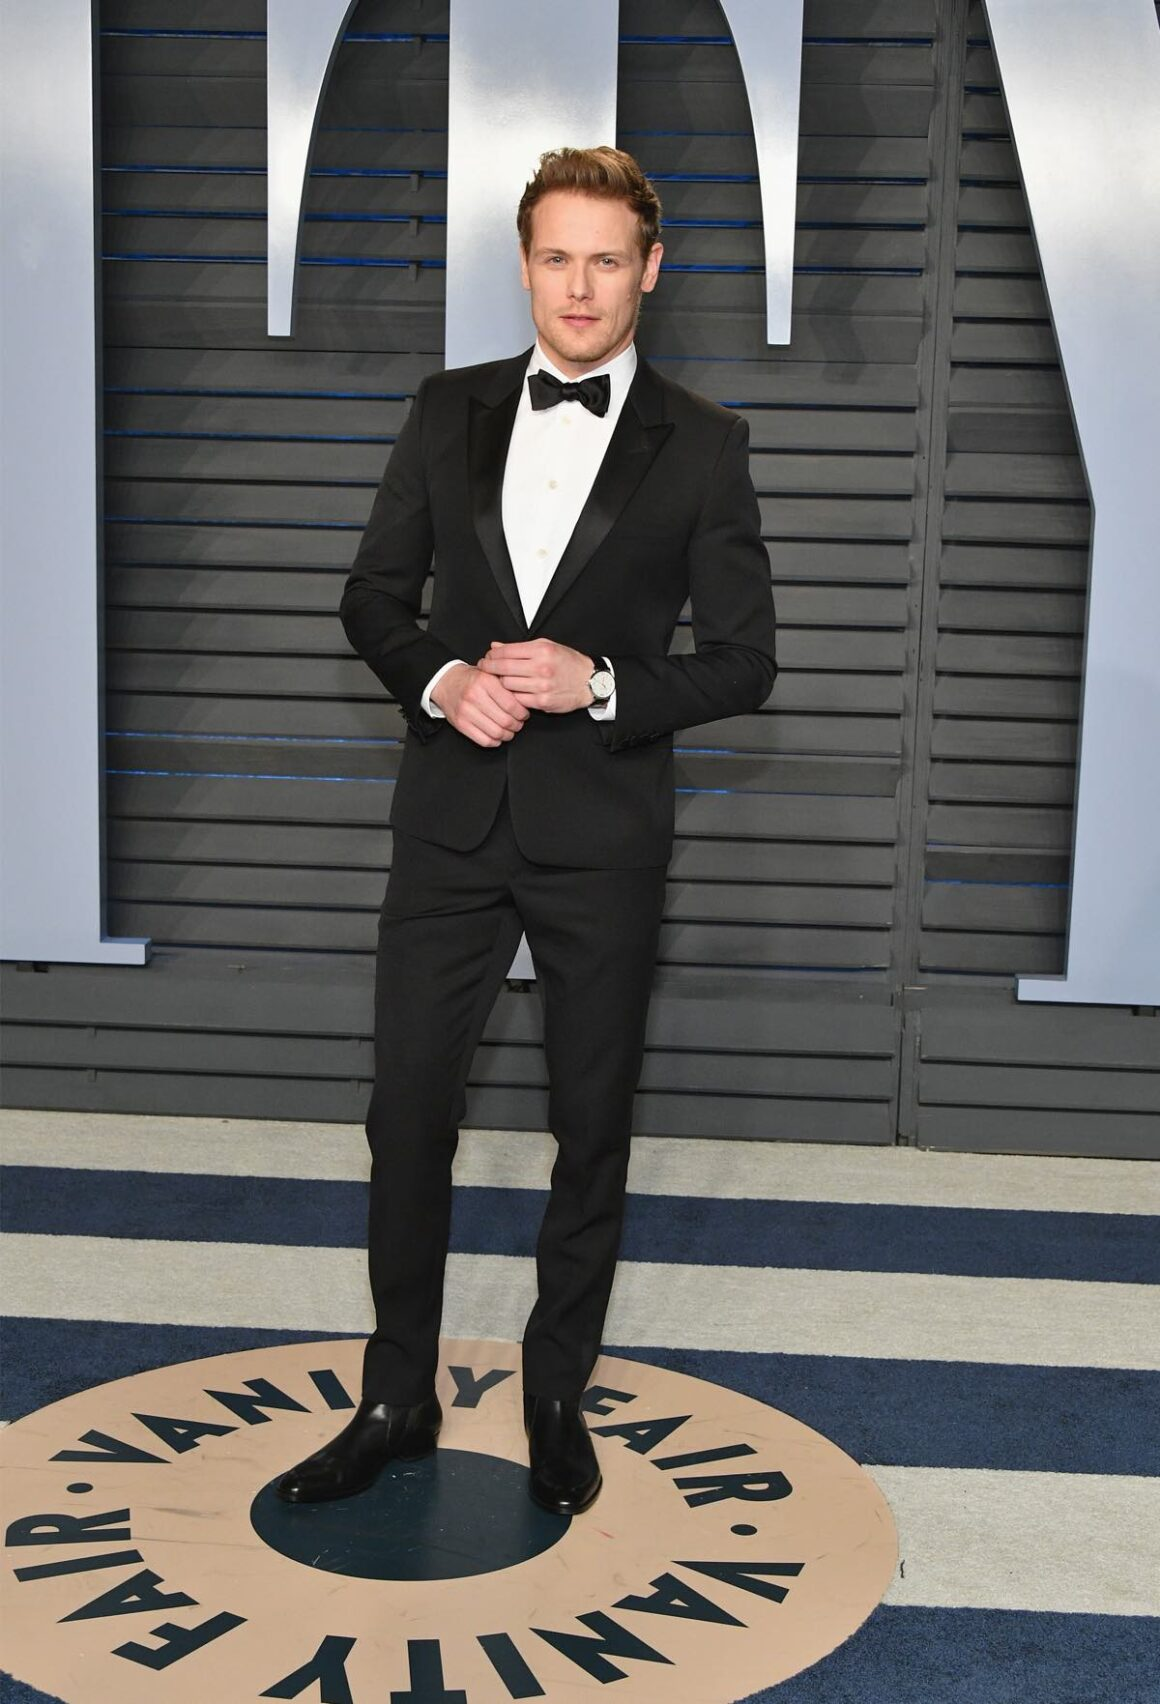 Sam Heughan attends the 2018 Vanity Fair Oscar Party Hosted By Radhika Jones - Arrivals